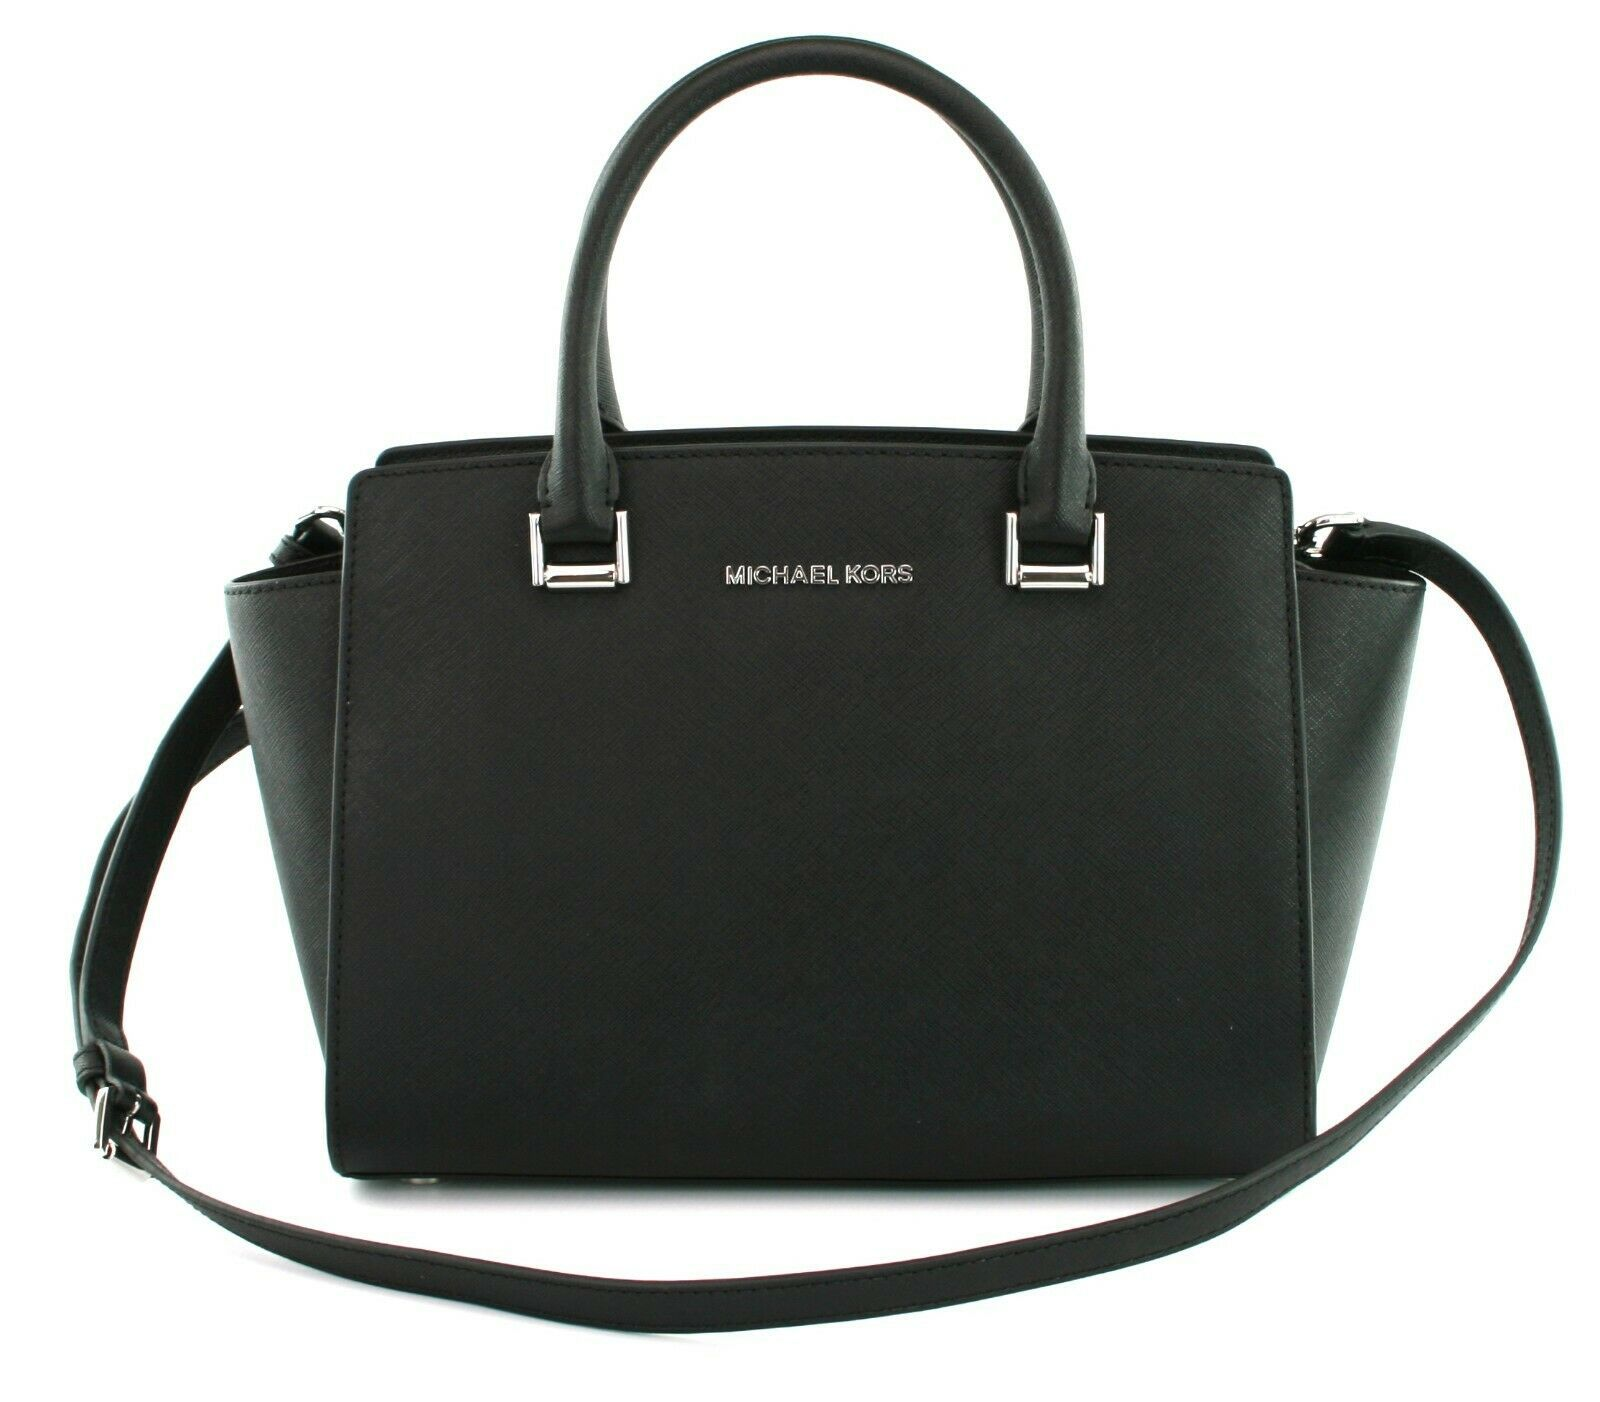 Michael Kors Selma Satchel Bag Saffiano Leather Black Small Handbag RRP £225